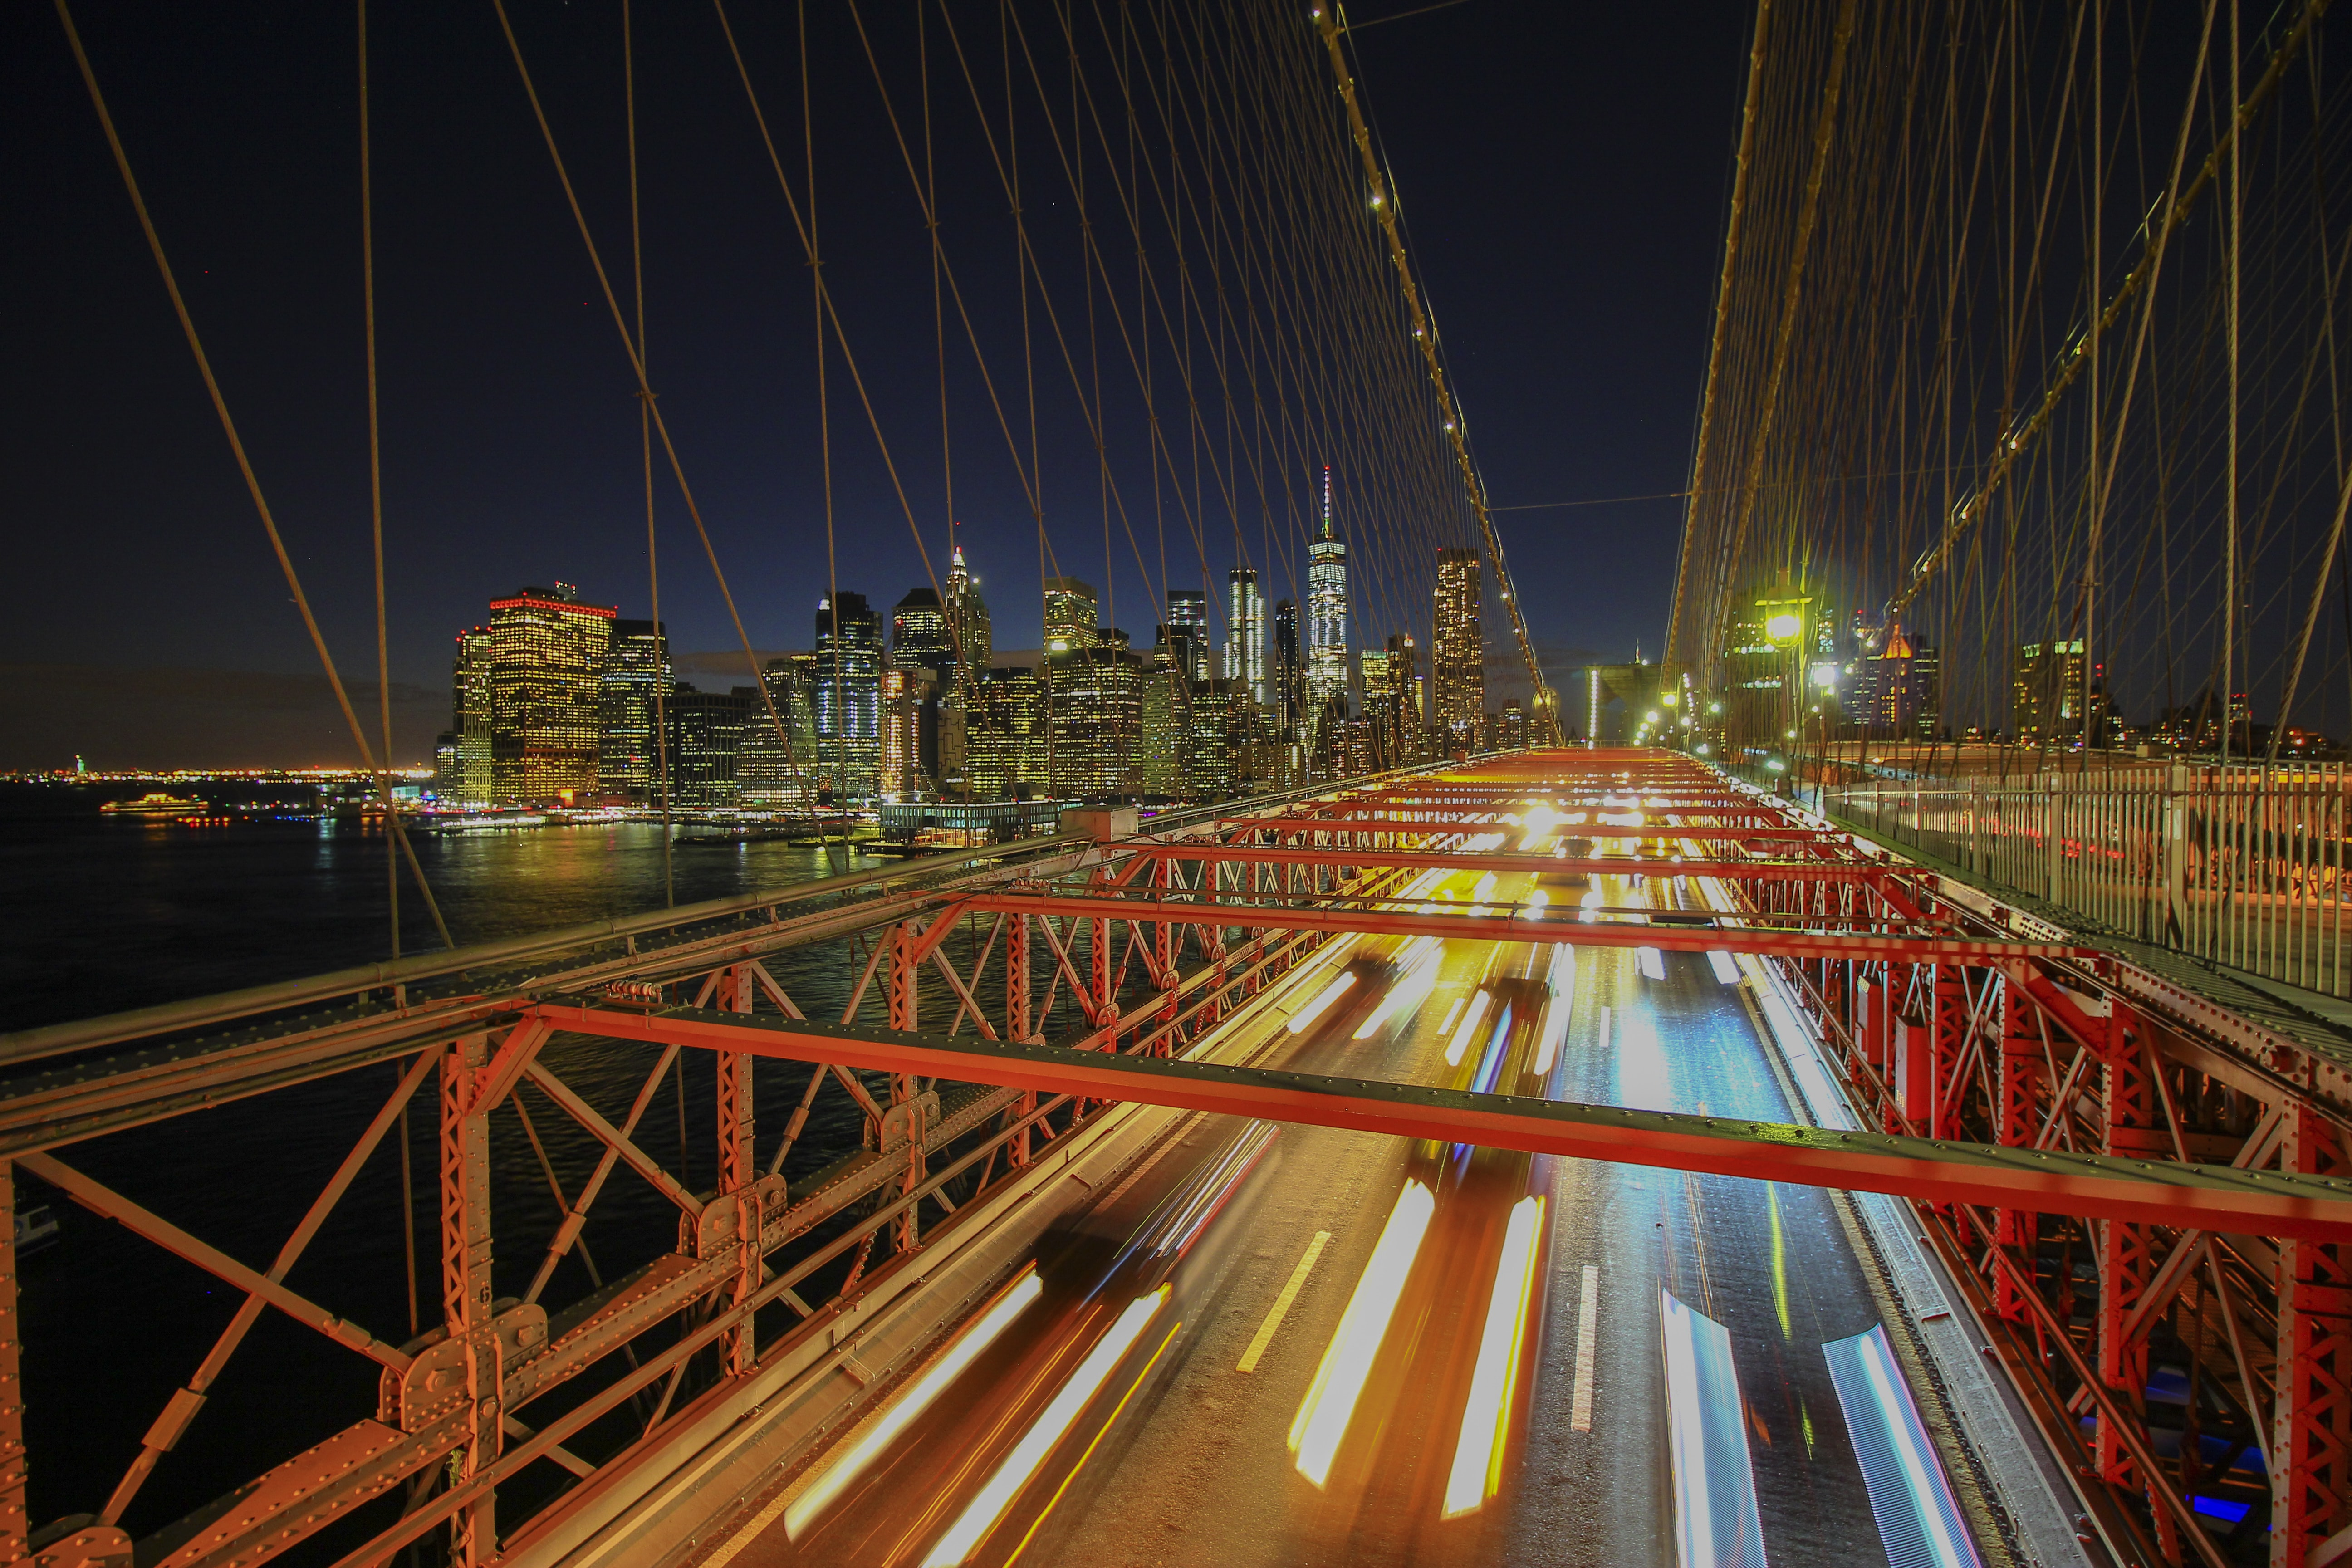 time-lapse photography of vehicles on the bridge during day